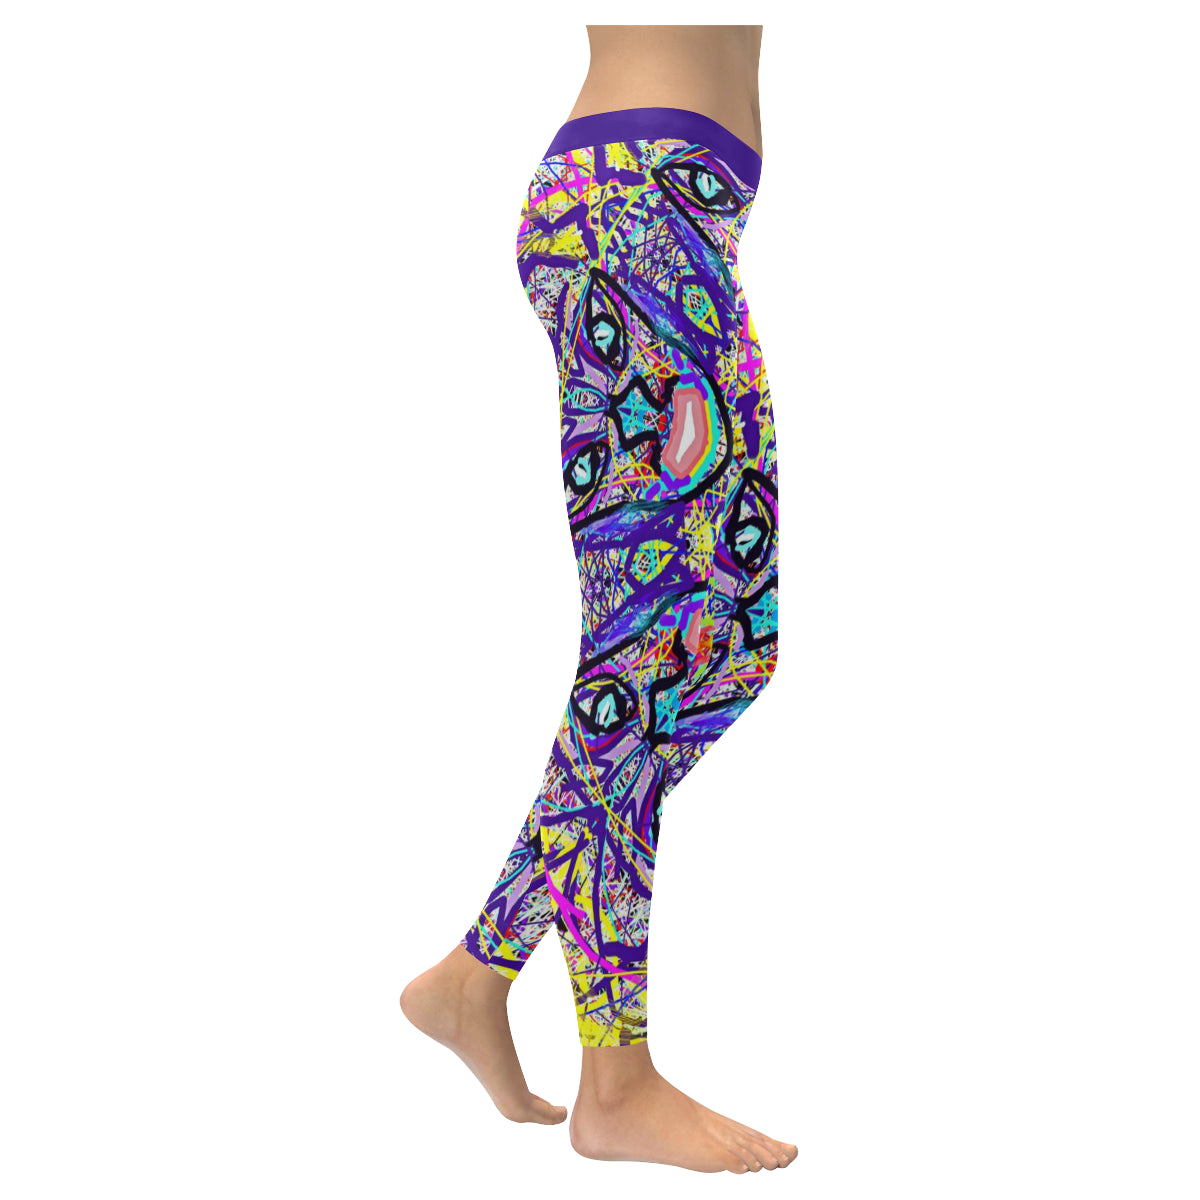 Thleudron Vikings Low Rise Leggings (Invisible Stitch) (Model L05) - Thleudron